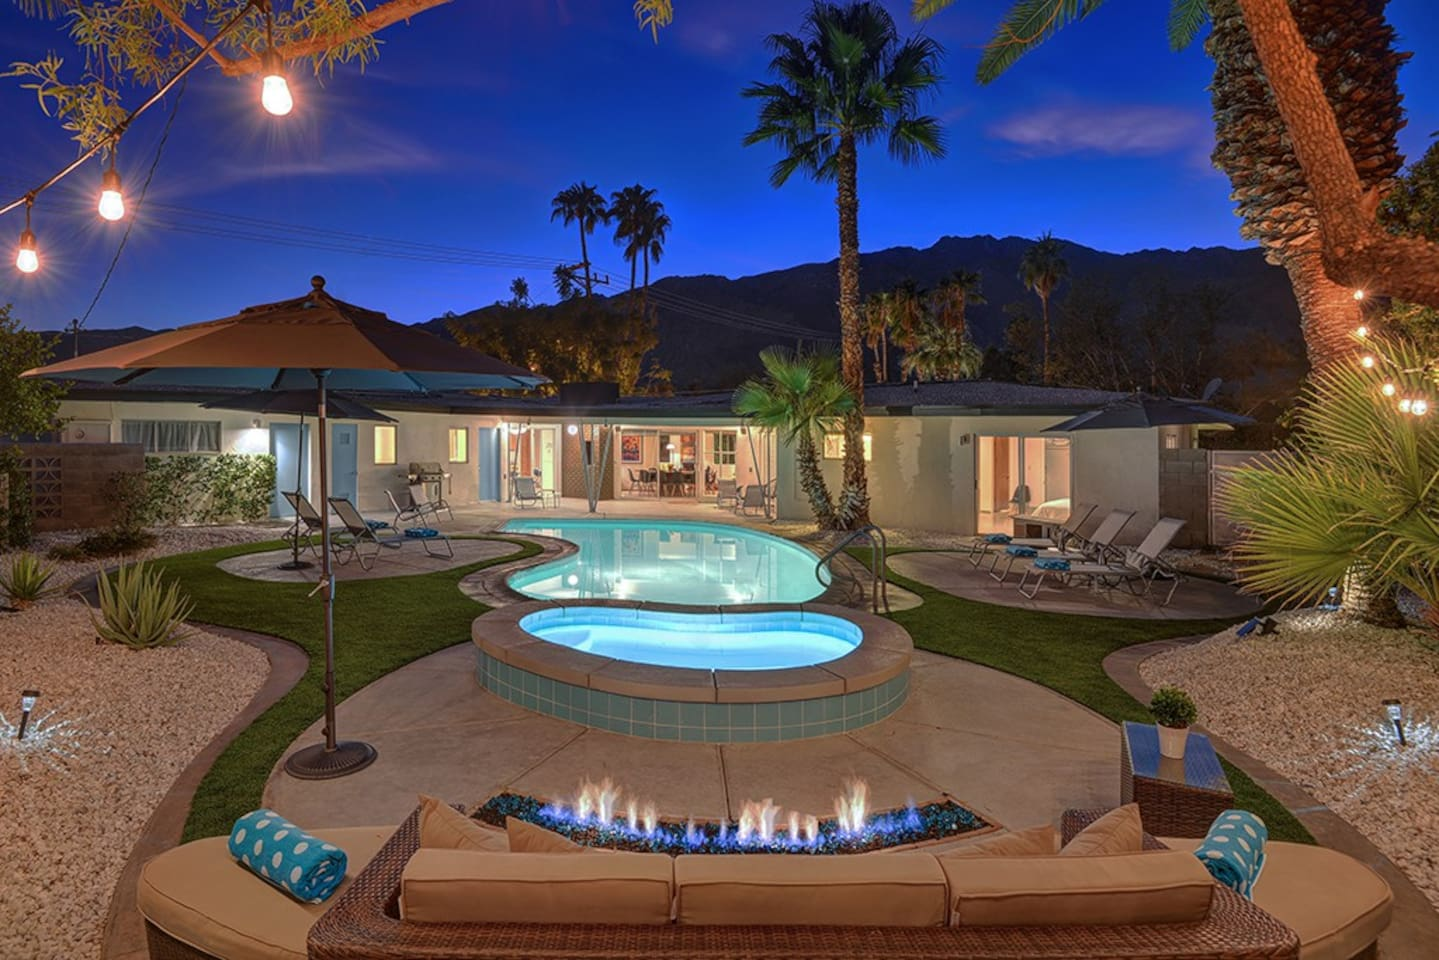 THE MONEY SHOT - THE RETRO HOUSE - PALM SPRINGS VACATION RENTAL POOL HOME